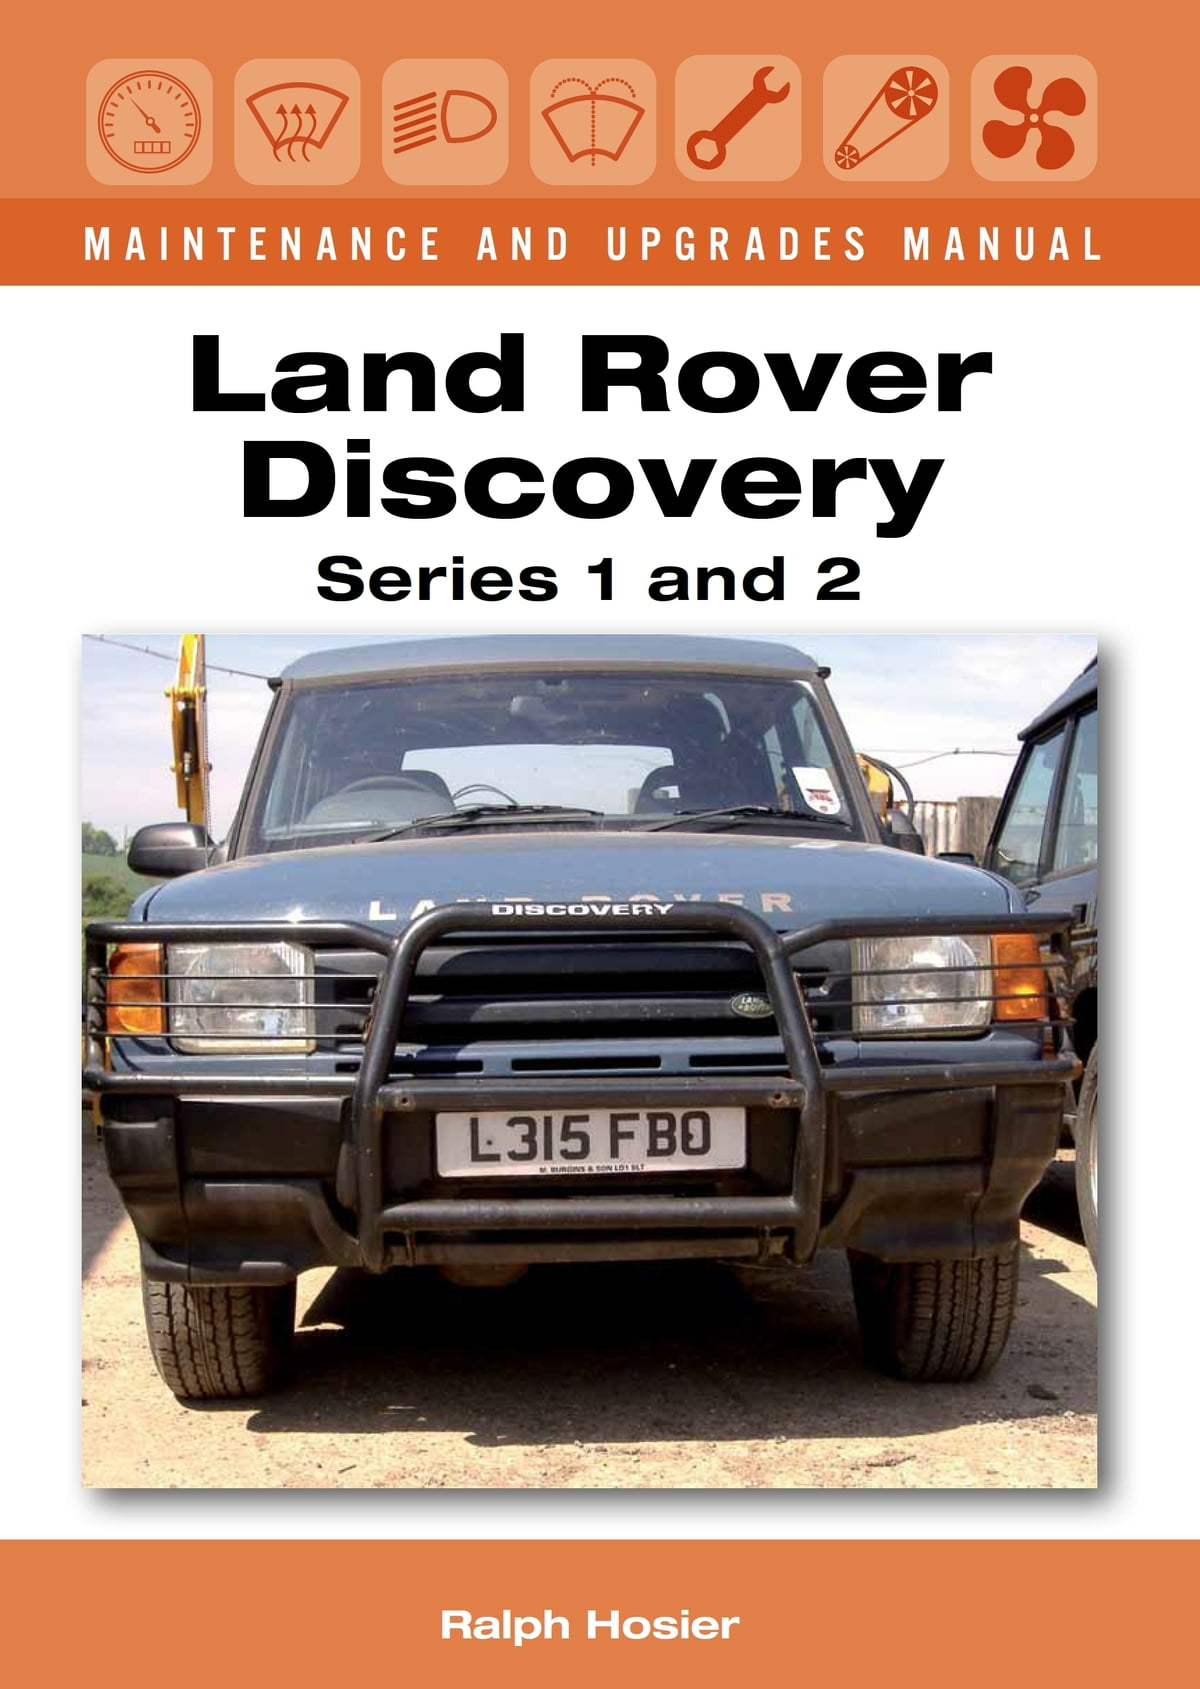 Land Rover Discovery Maintenance and Upgrades Manual, Series 1 and 2 eBook  by Ralph Hosier - 9781847978271 | Rakuten Kobo